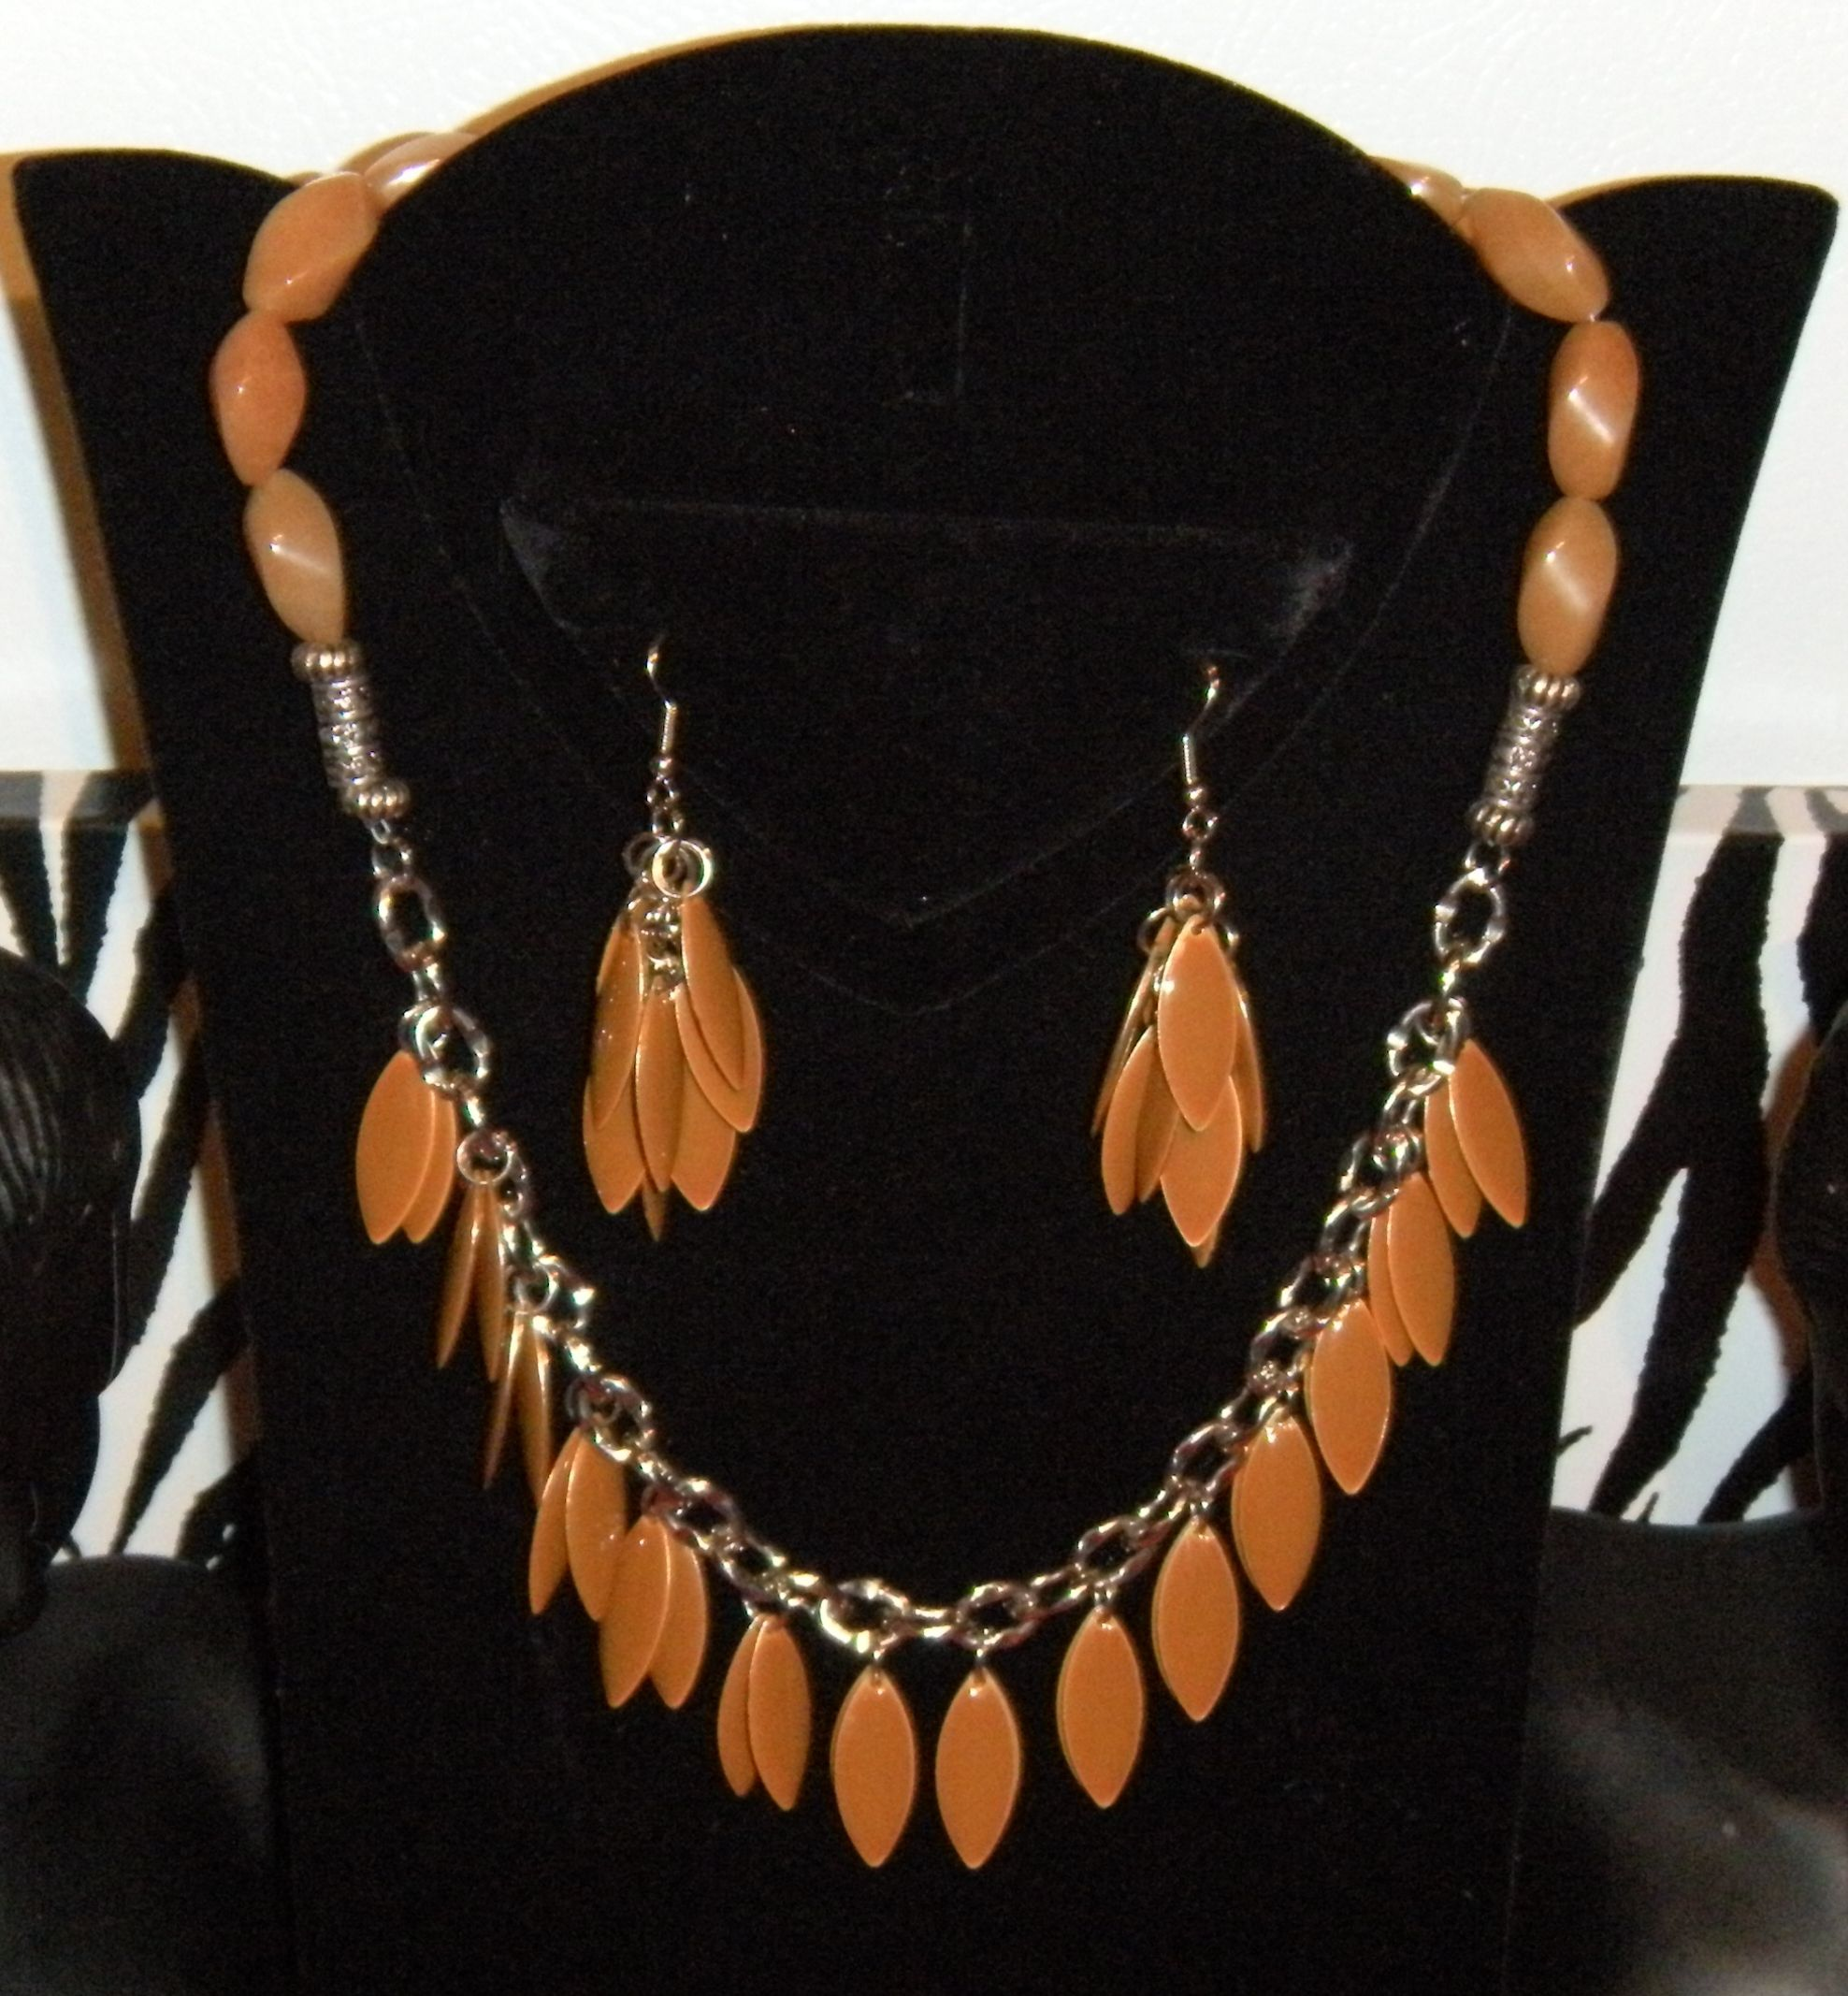 Necklace/earrings, another one of my favorites.